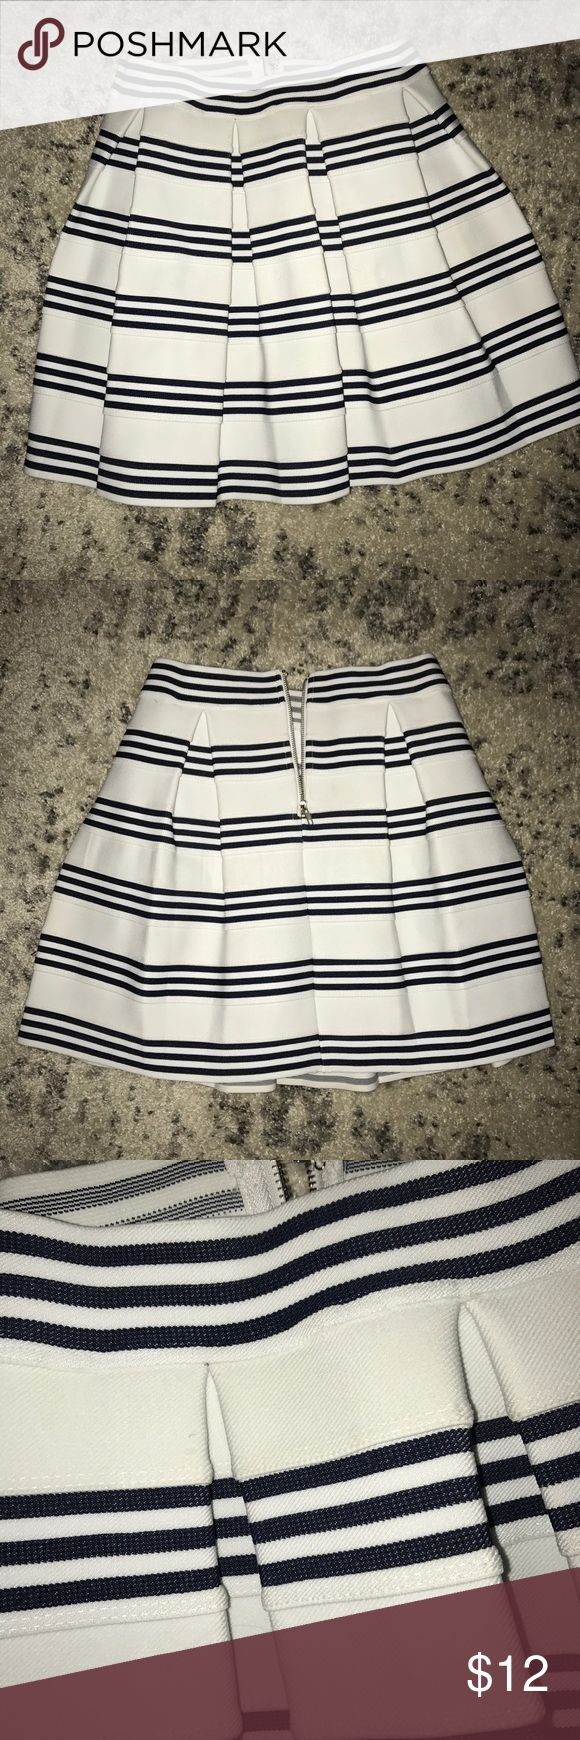 White and Navy Striped Skirt Super cute navy and white striped skirt! Fabric is thick and stiffer material so it holds its structure when wearing. Only worn a couple of times. Francesca's Collections Skirts